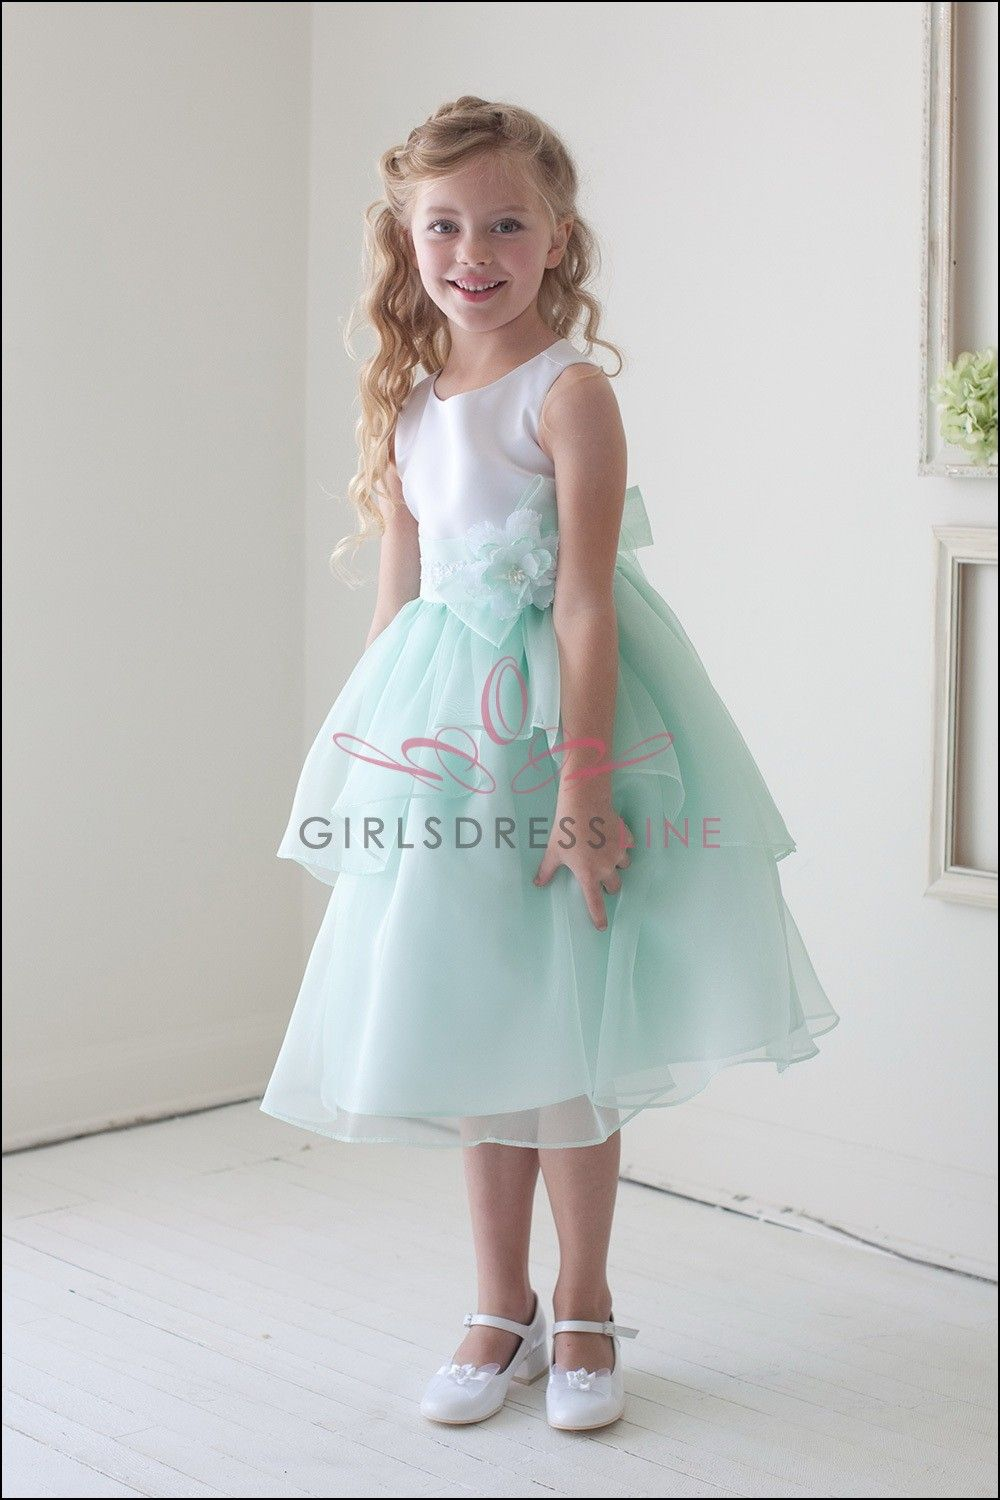 Cheap flower girl dresses under 30 dresses and gowns ideas cheap flower girl dresses under 30 izmirmasajfo Images